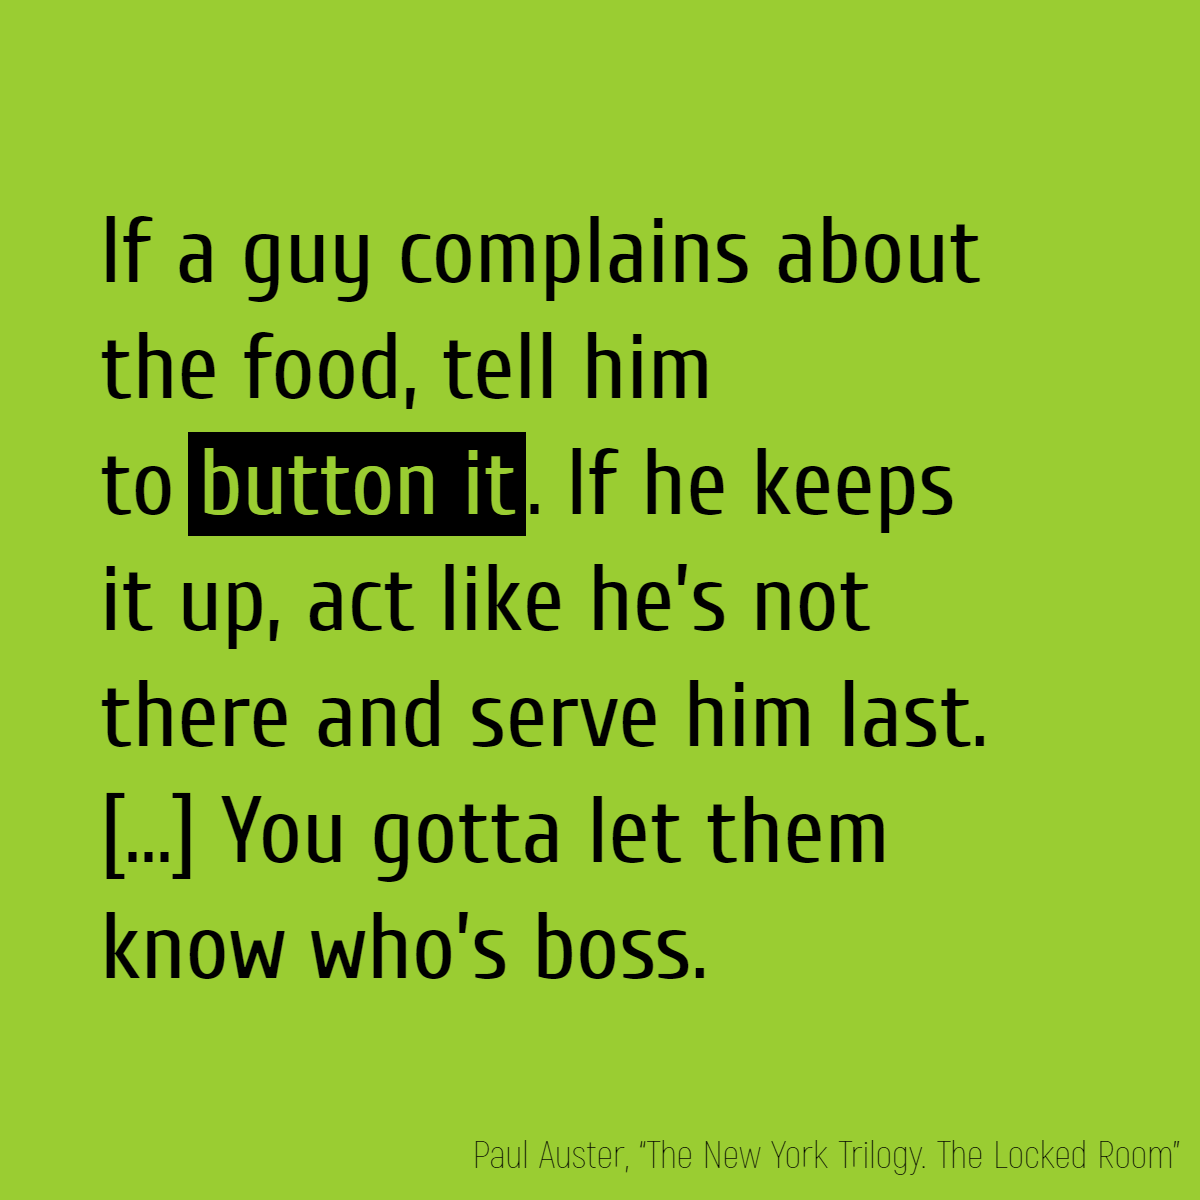 If a guy complains about the food, tell him to **button it**. If he keeps it up, act like he's not there and serve him last. If that don't do the trick, tell him you'll put ice water in his soup the next time. Even better, tell him you'll piss in it. You gotta let them know who's boss.